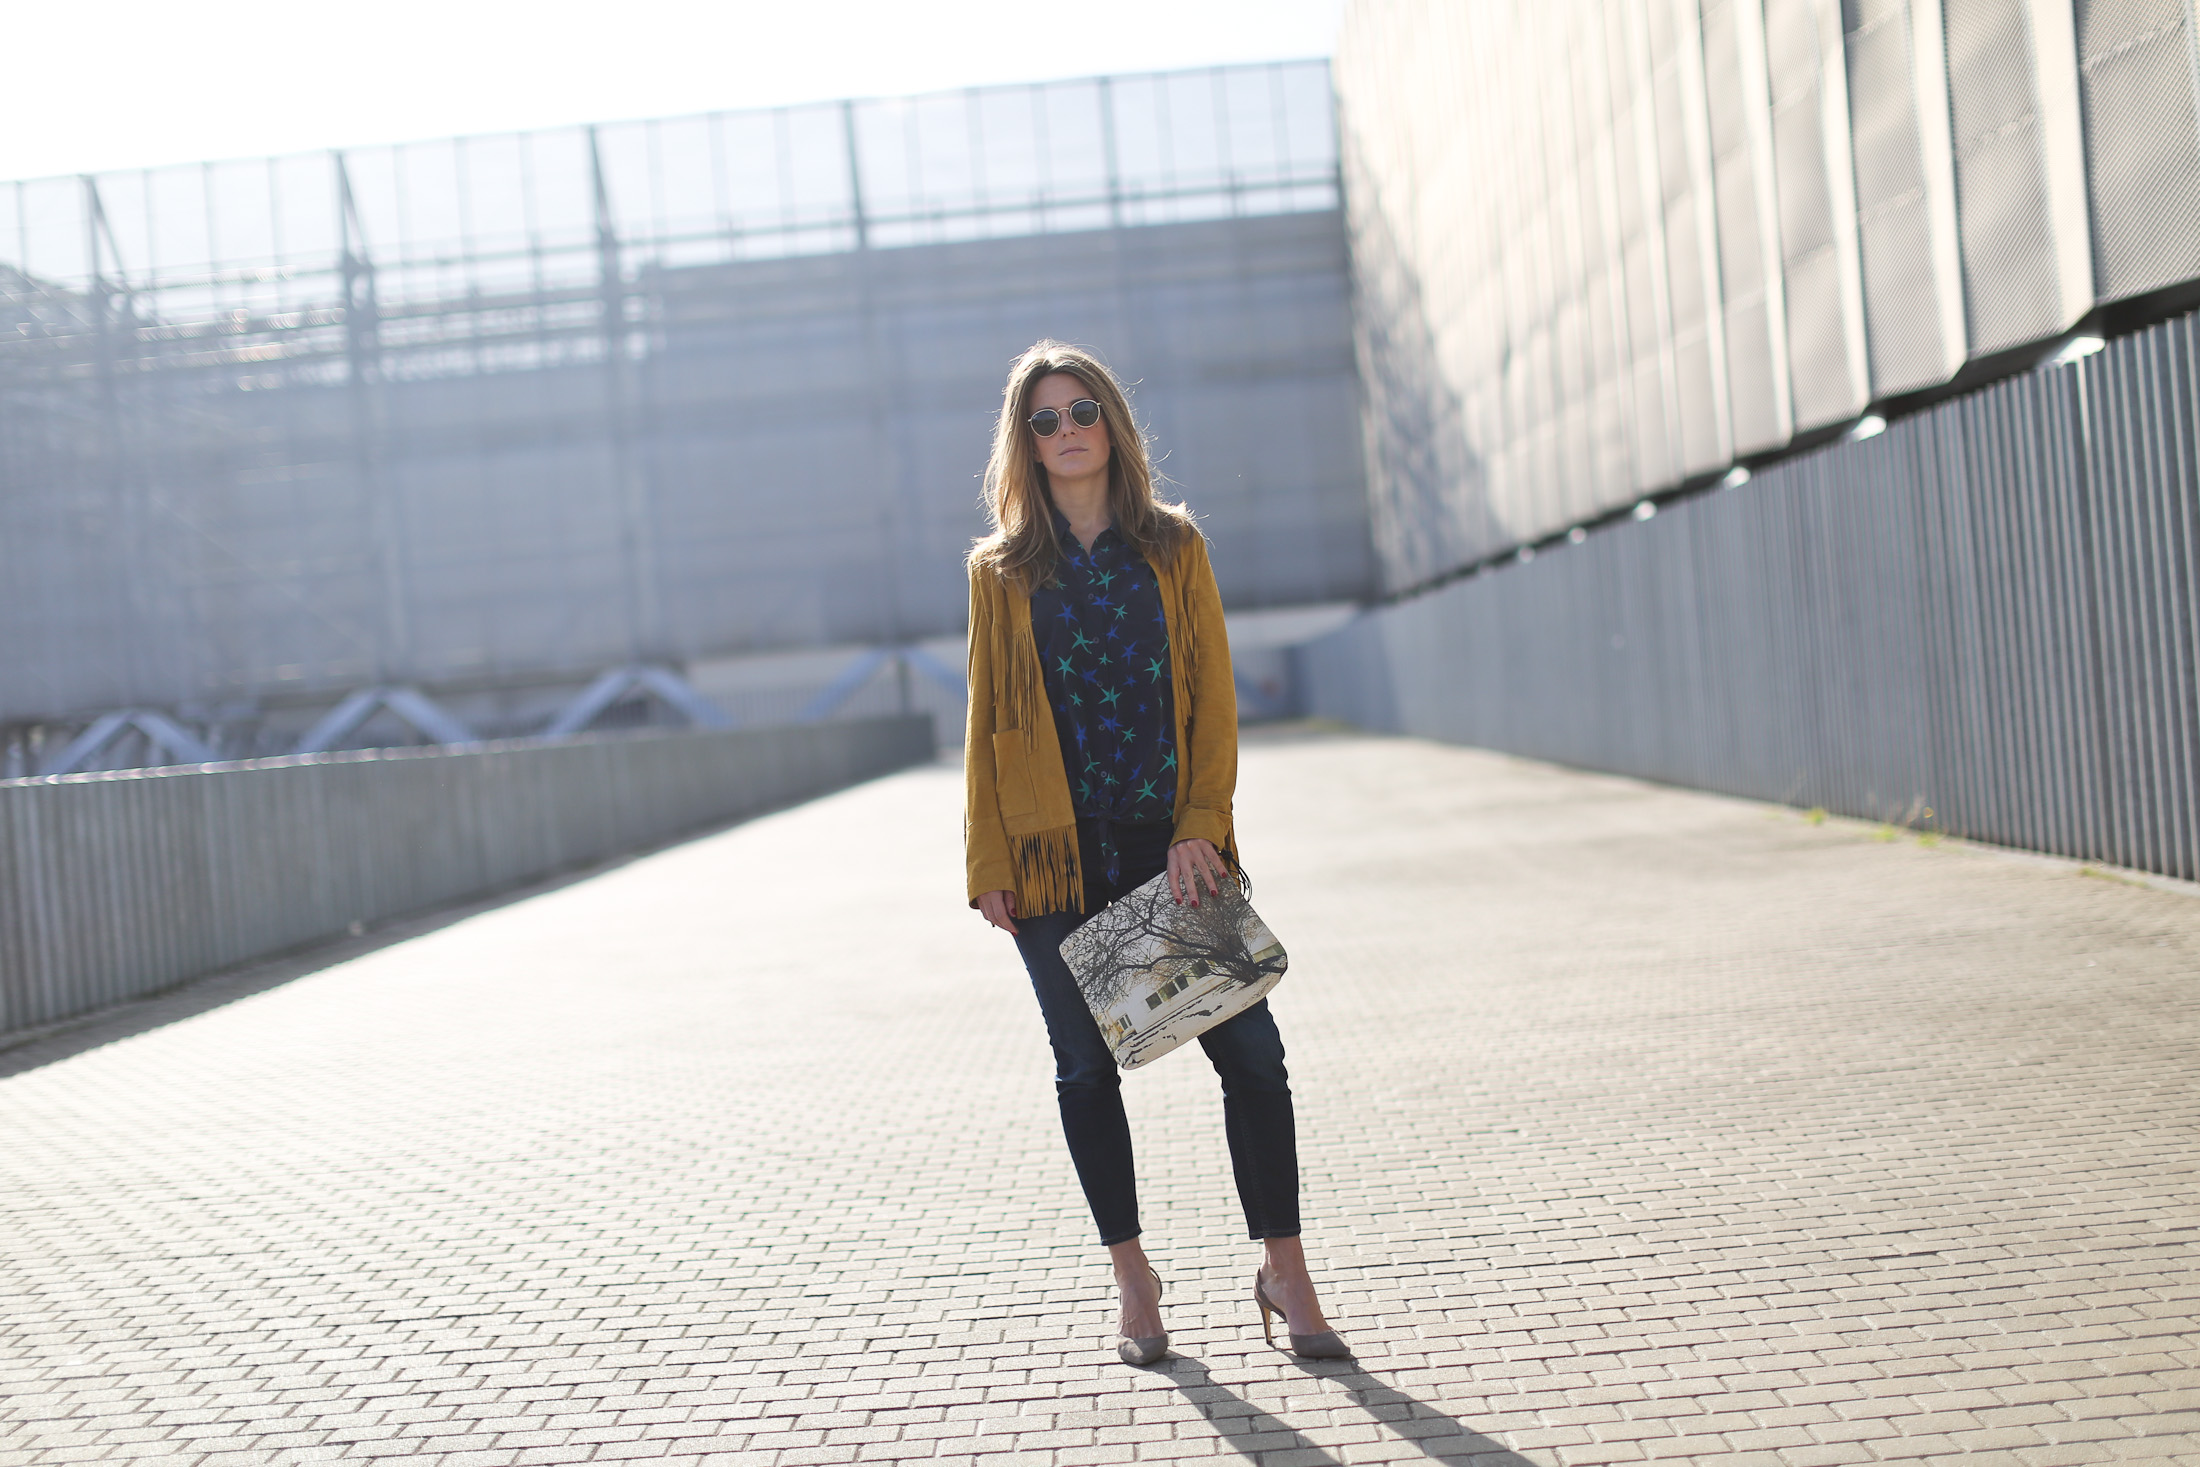 Clochet_streetstyle_zubi_helsinki_clutch_trimmerbilbao_equipment_france_silk_blouse-6